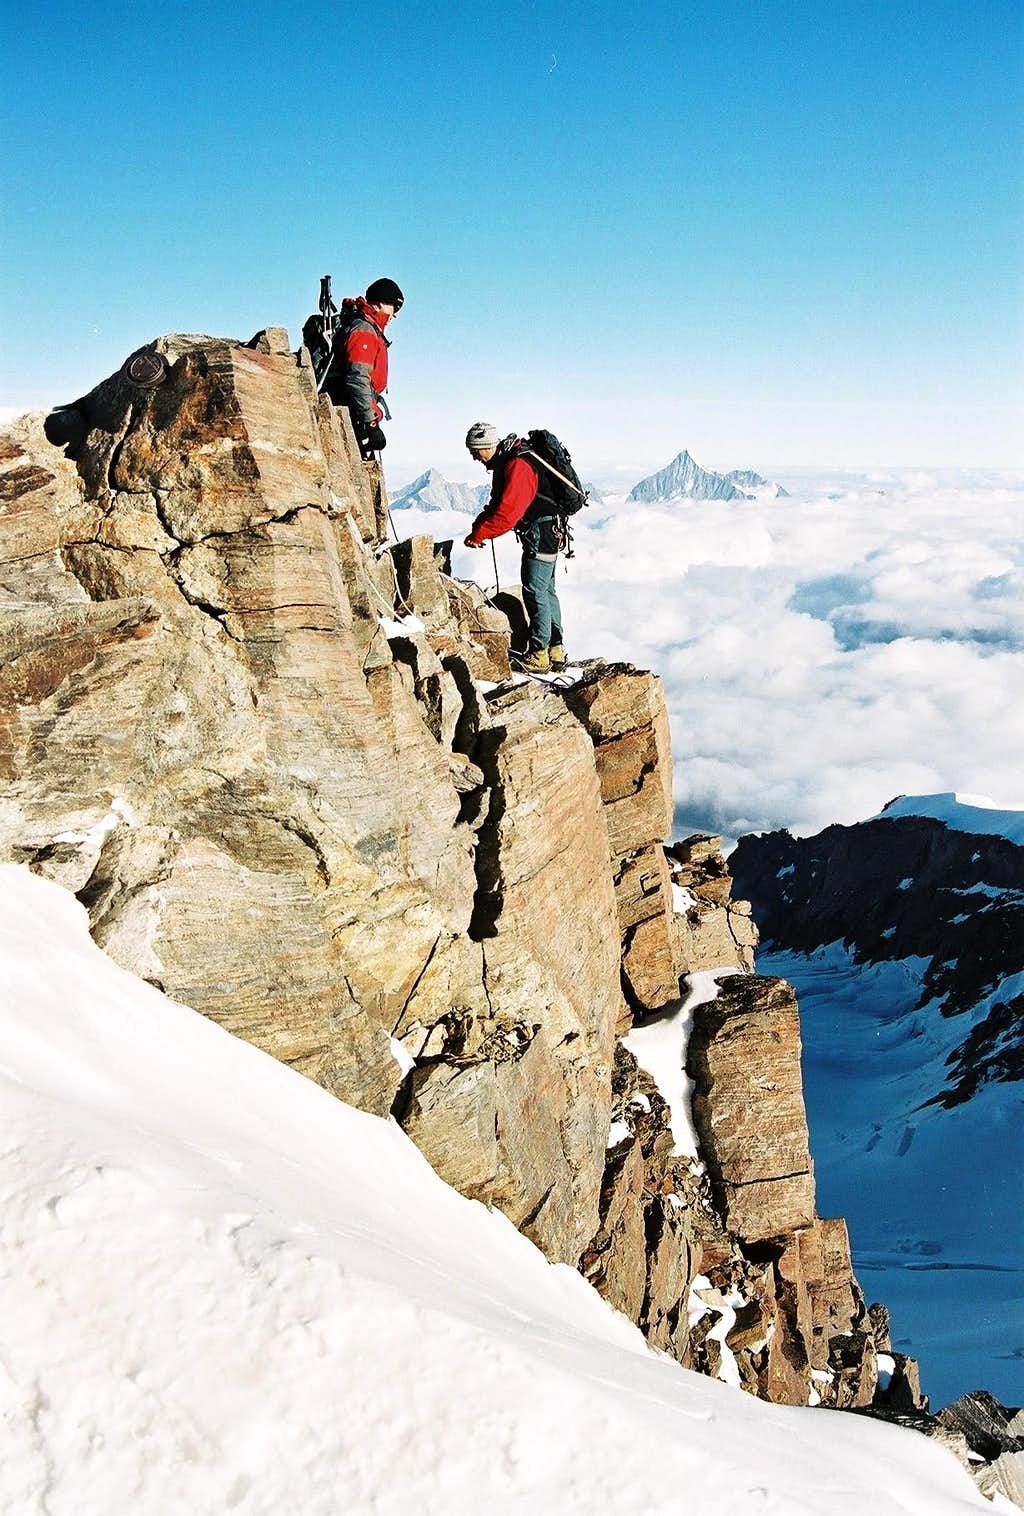 Almost at the top of Dufourspitze